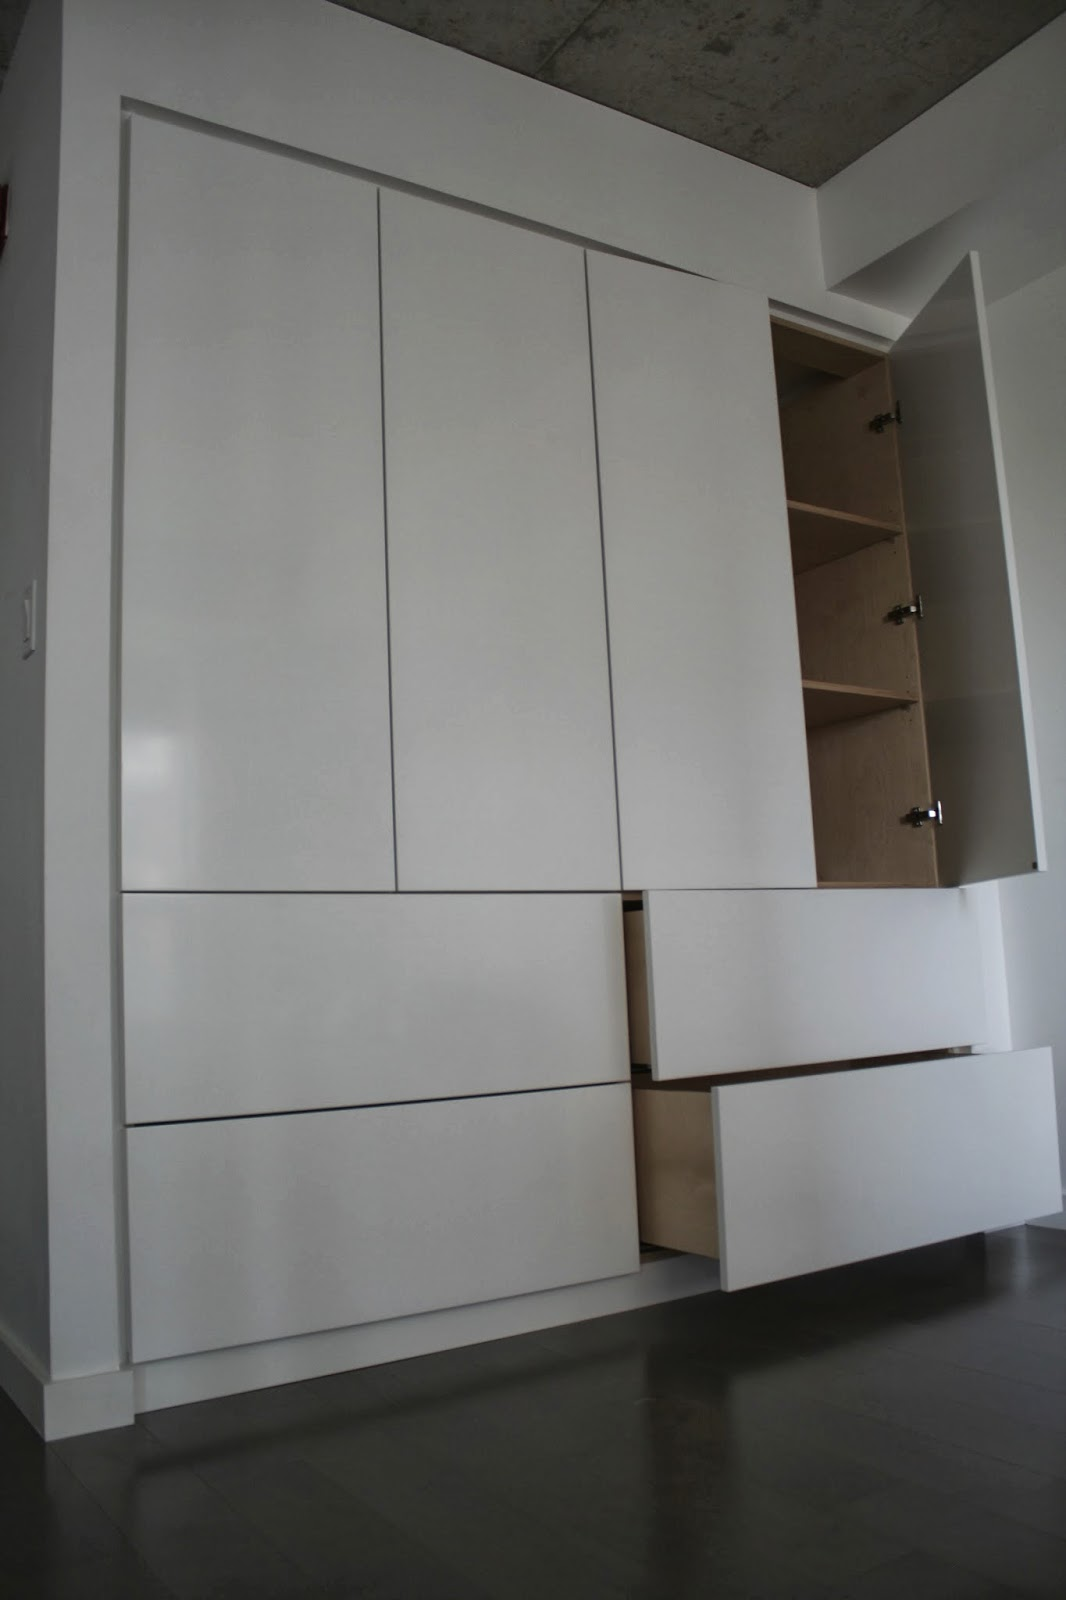 cc and sons contracting inc built in closet cabinets Closet Built in TV Cabinets built in bedroom closet cabinets